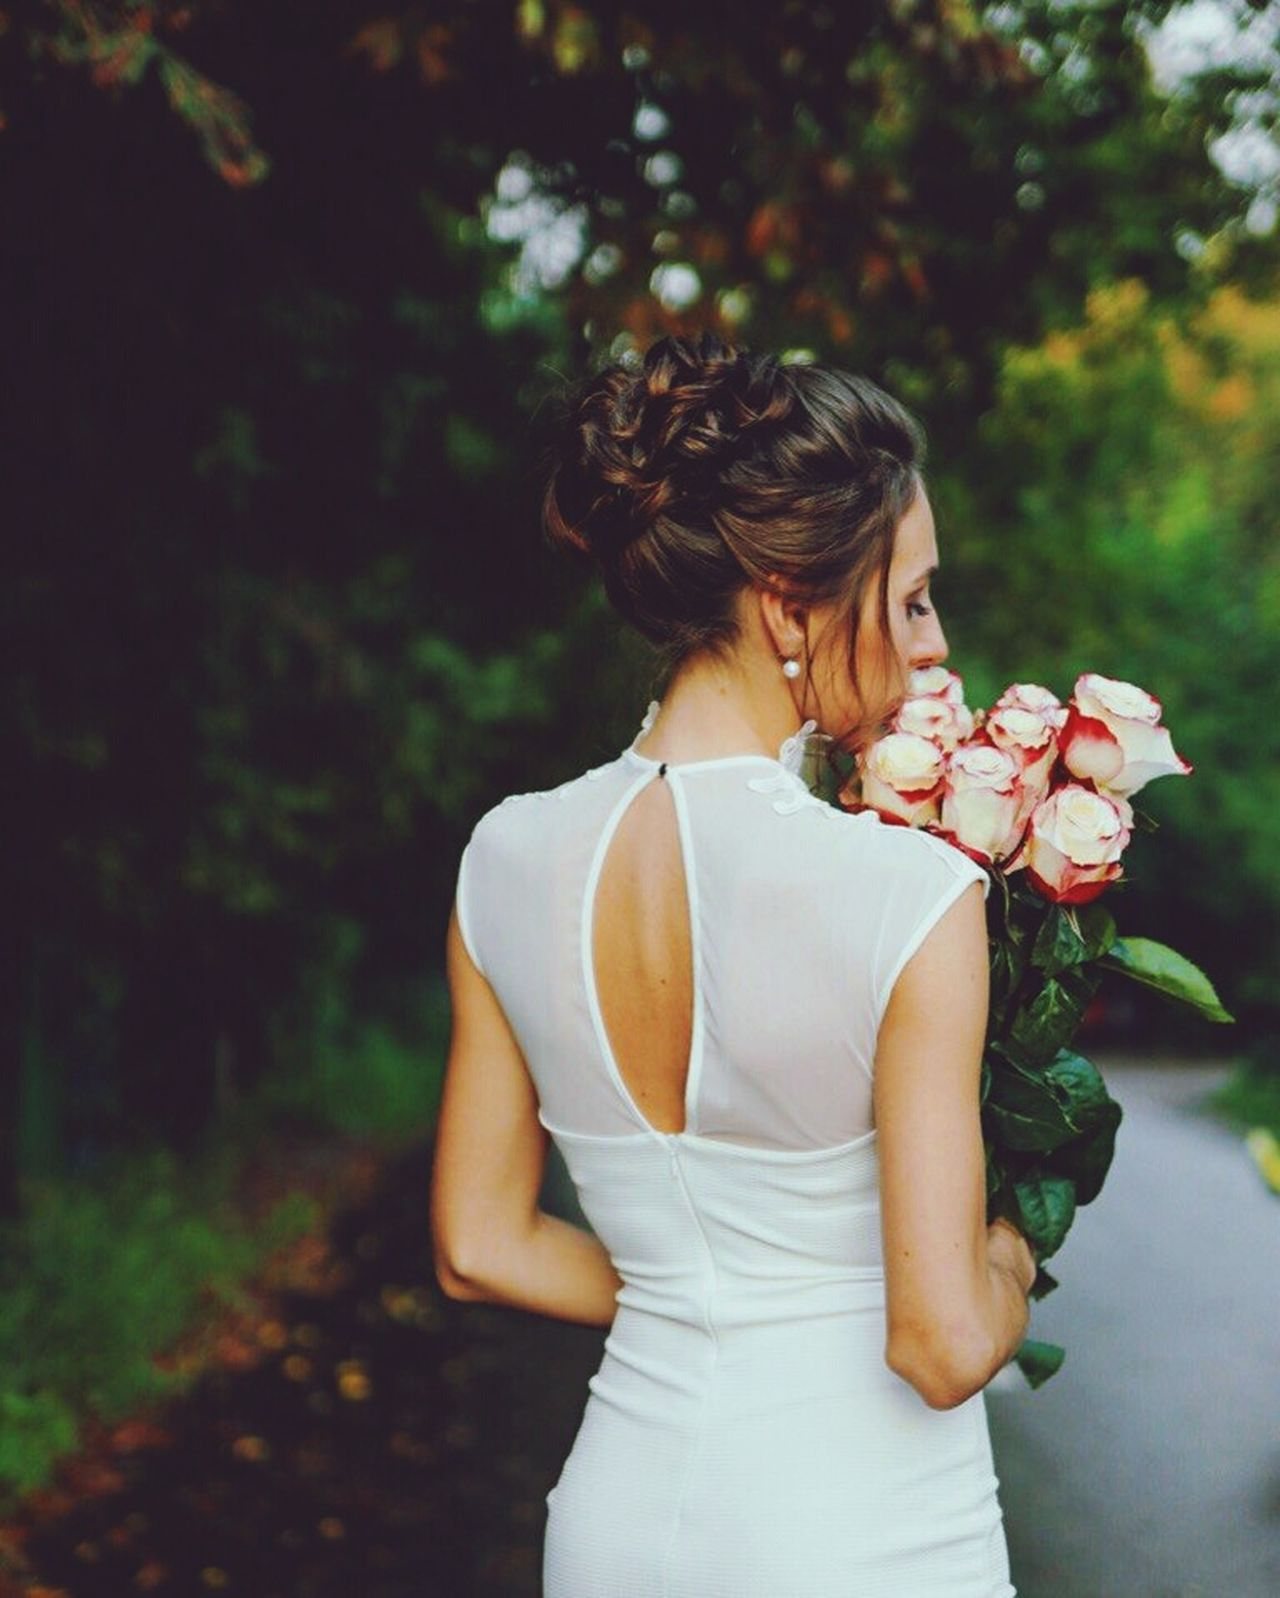 Hair stylist Irina Tishkova🙂 Flower Hairstylist Beauty Bride Hairstyle Wedding One Woman Only Forest One Person Females Curly Hair Wedding Dress